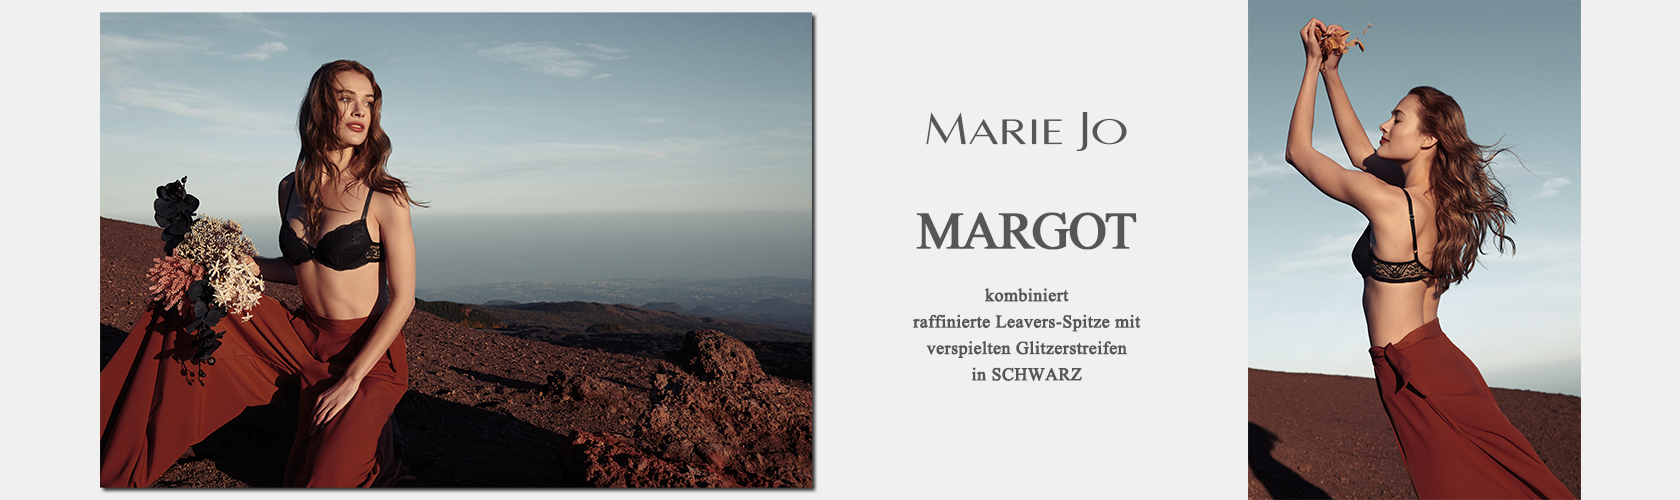 Slideshow MARGOT ZWA 06.12.